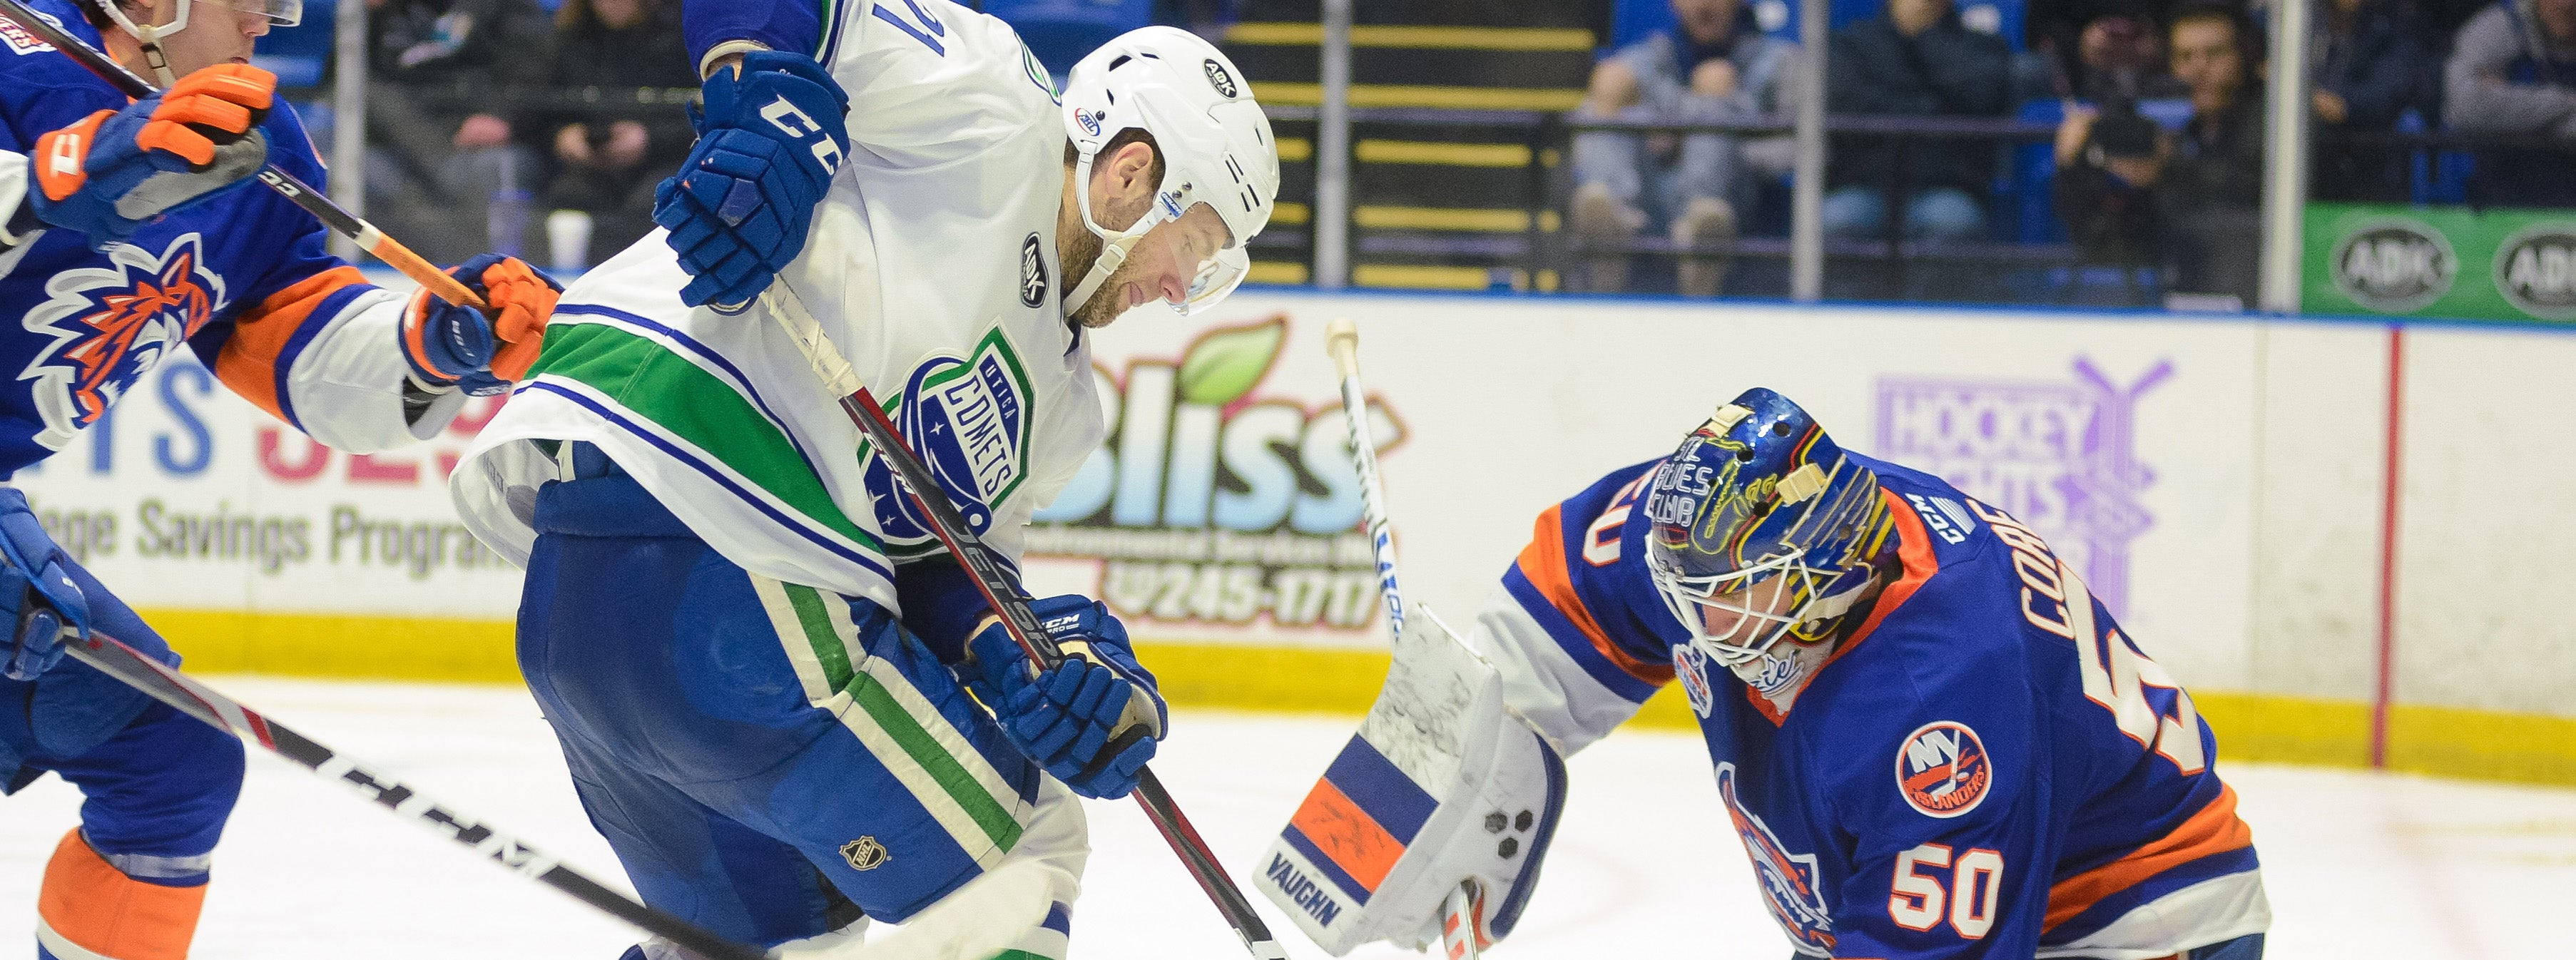 COMETS BATTLE SOUND TIGERS FOR THIRD TIME